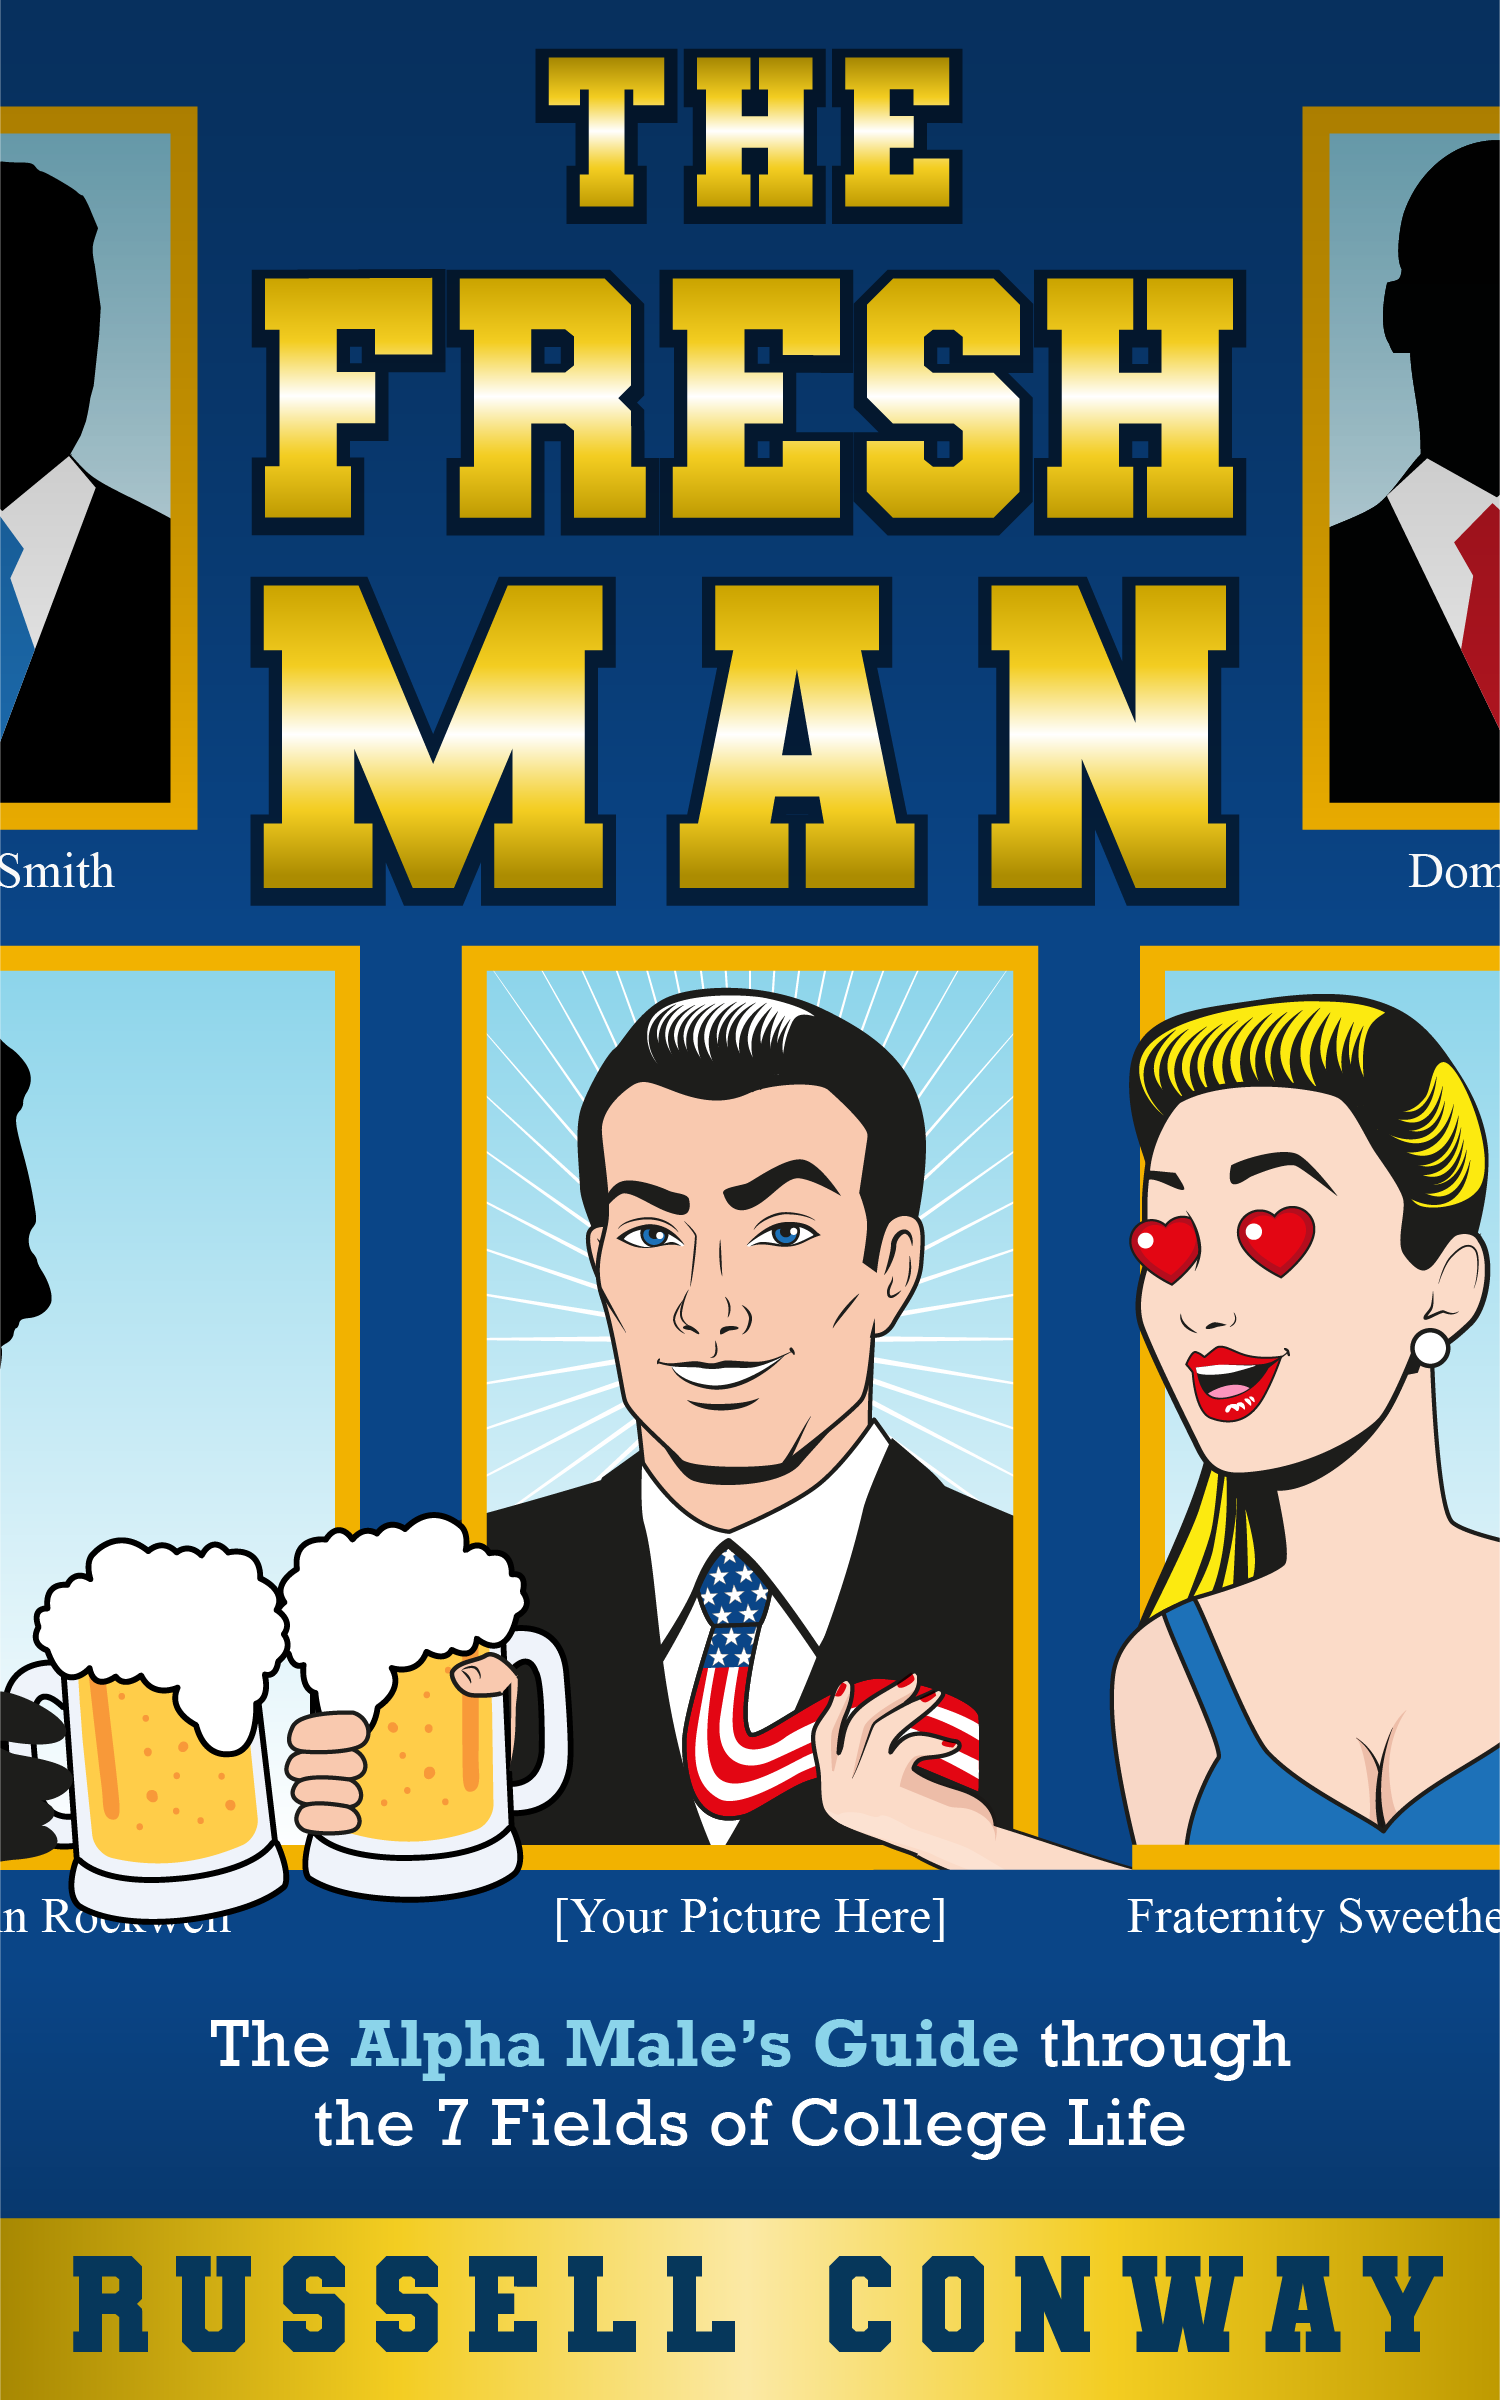 Self-help eBook for College men needs chic, masculine cover art